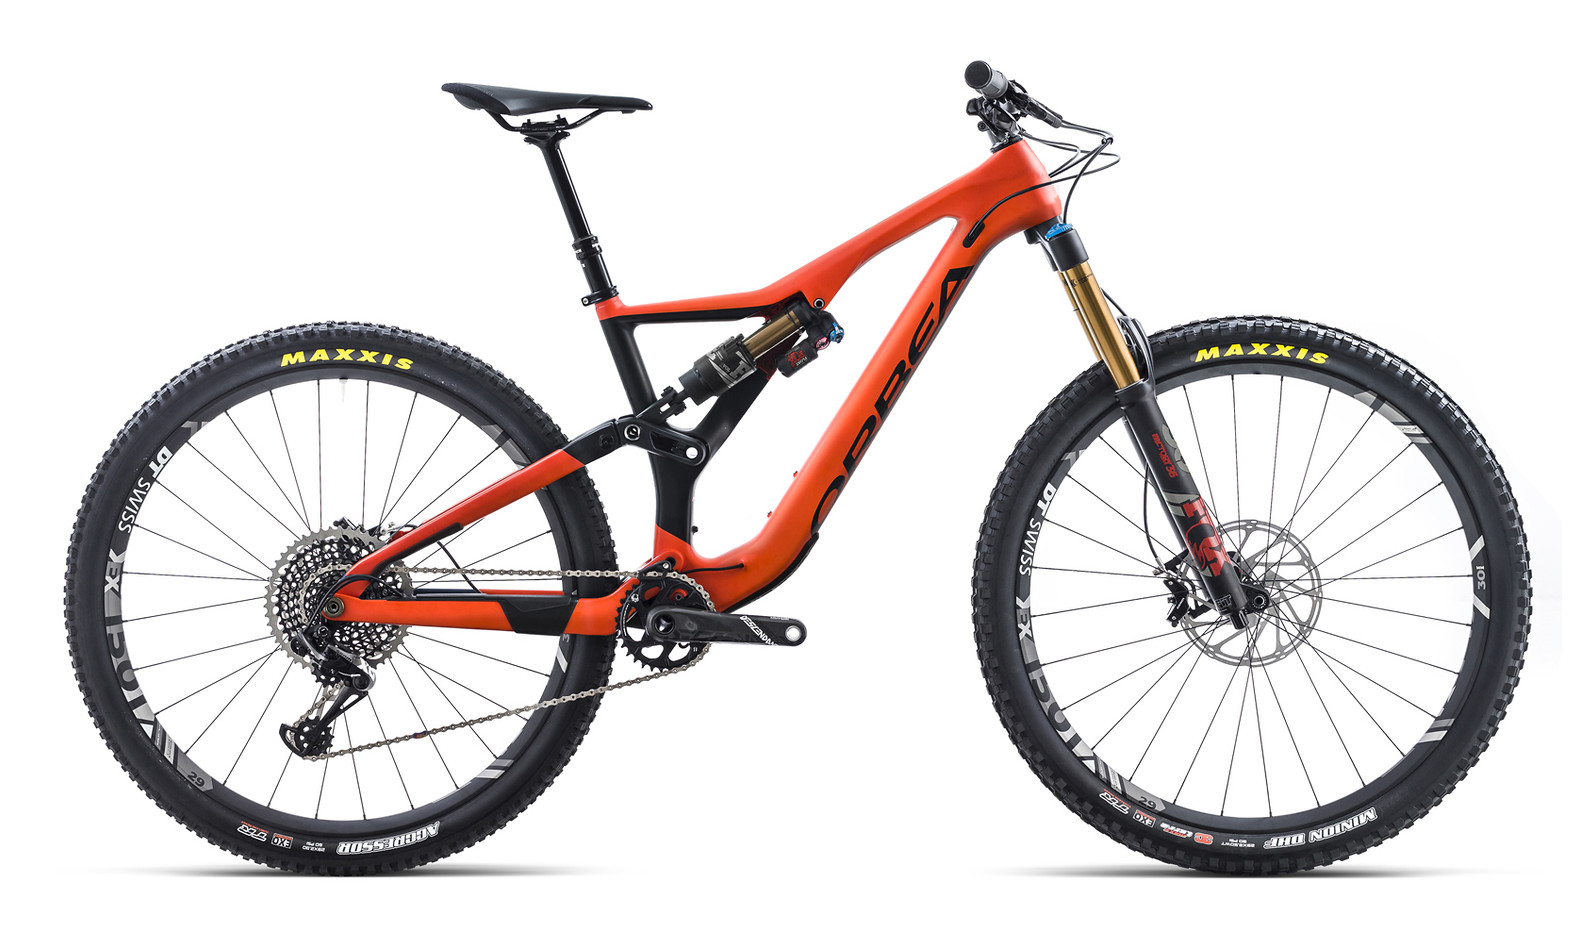 2018 Orbea Rallon M-Team  2018 Orbea Rallon M-Team red